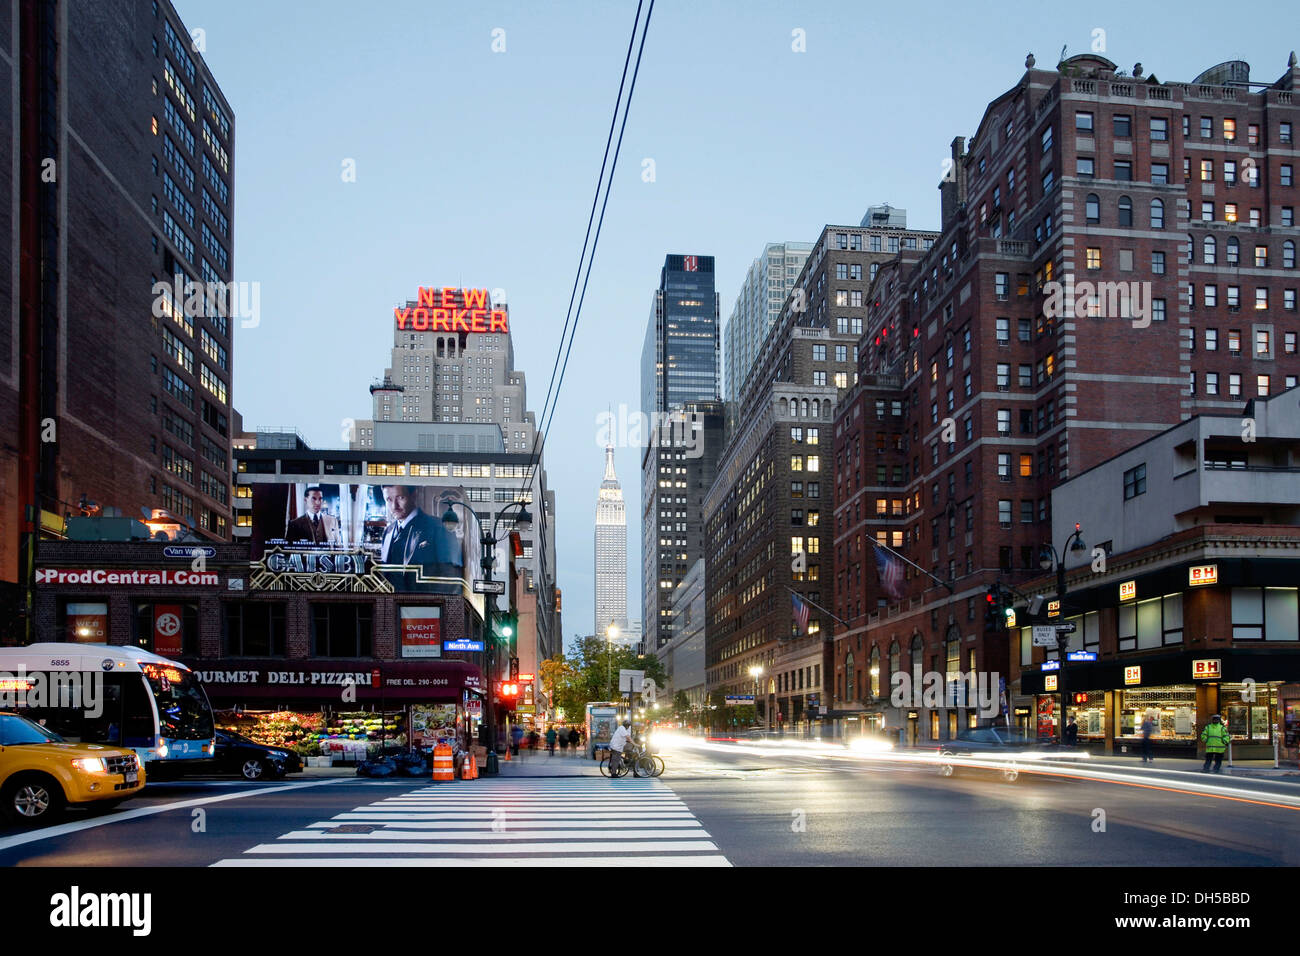 9th Avenue, 34th Street, New Yorker Hotel, Manhattan, New York City, New York, United States - Stock Image